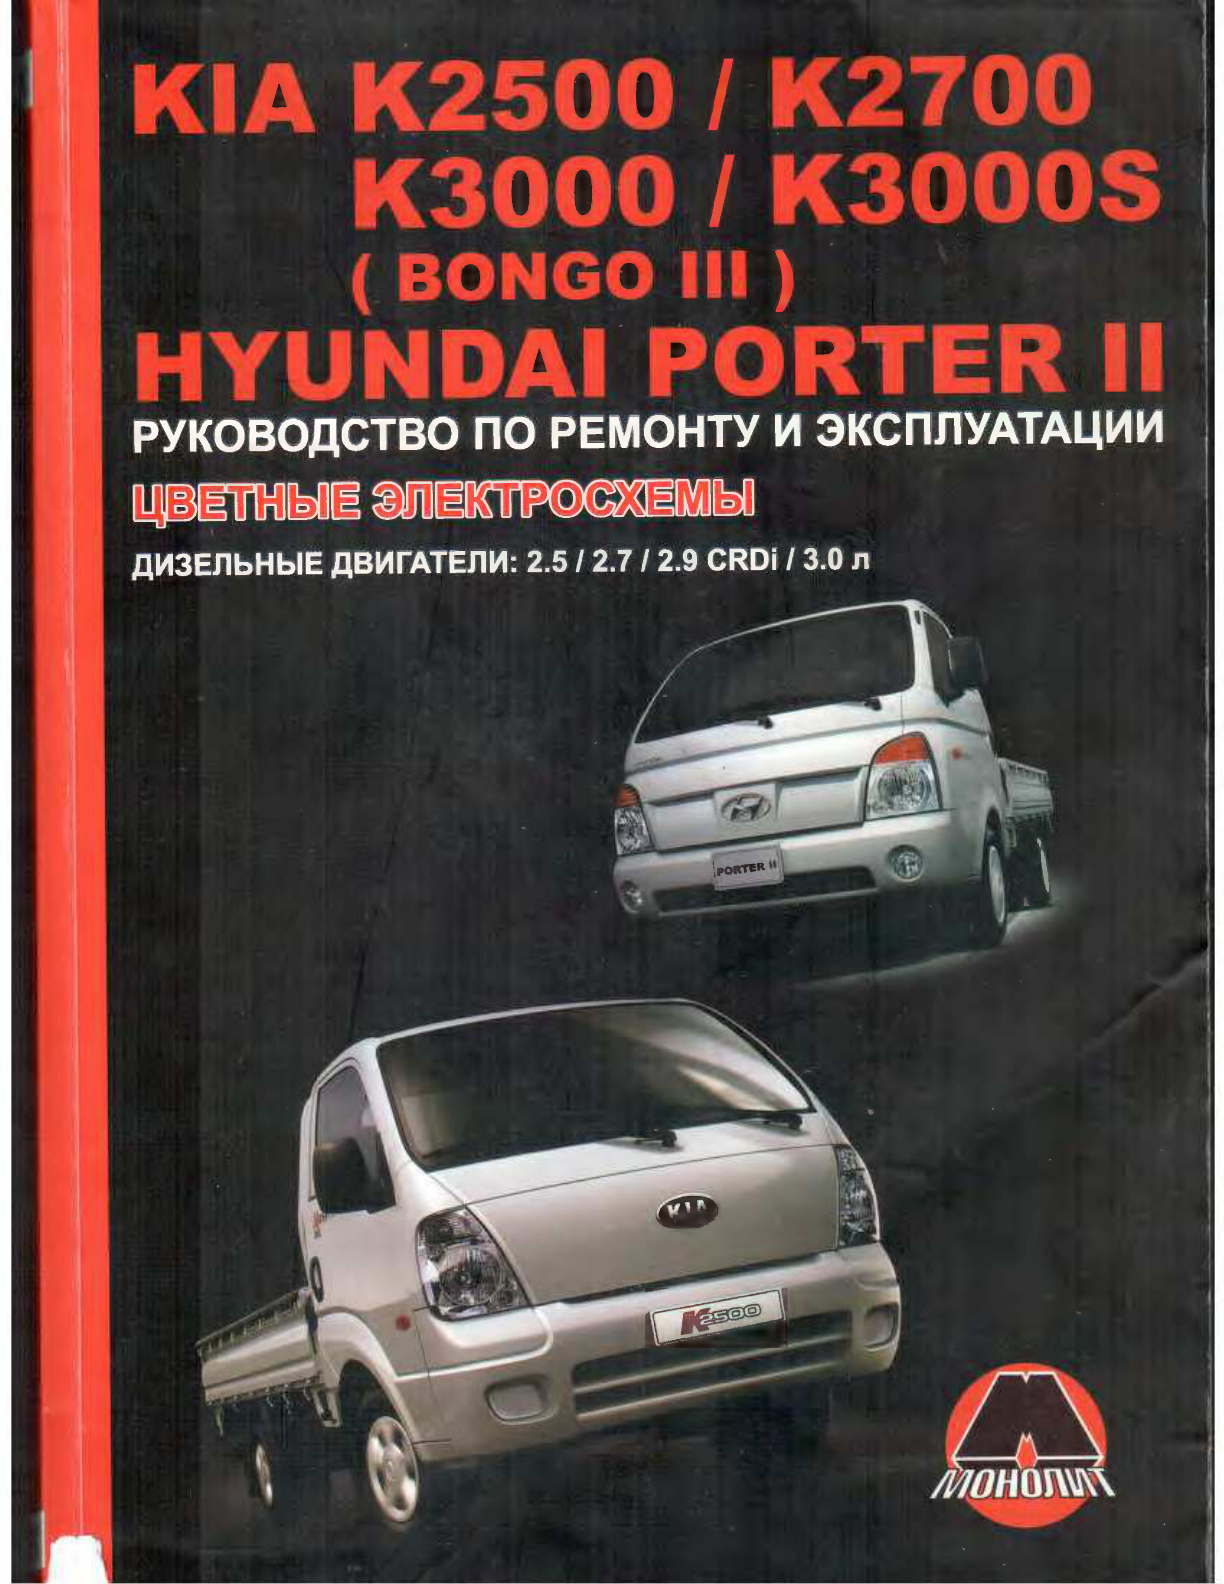 kia 2700 workshop manual russian pdf rh manuals co Kia 2700 with Bumper Bars 2015 Kia K2700